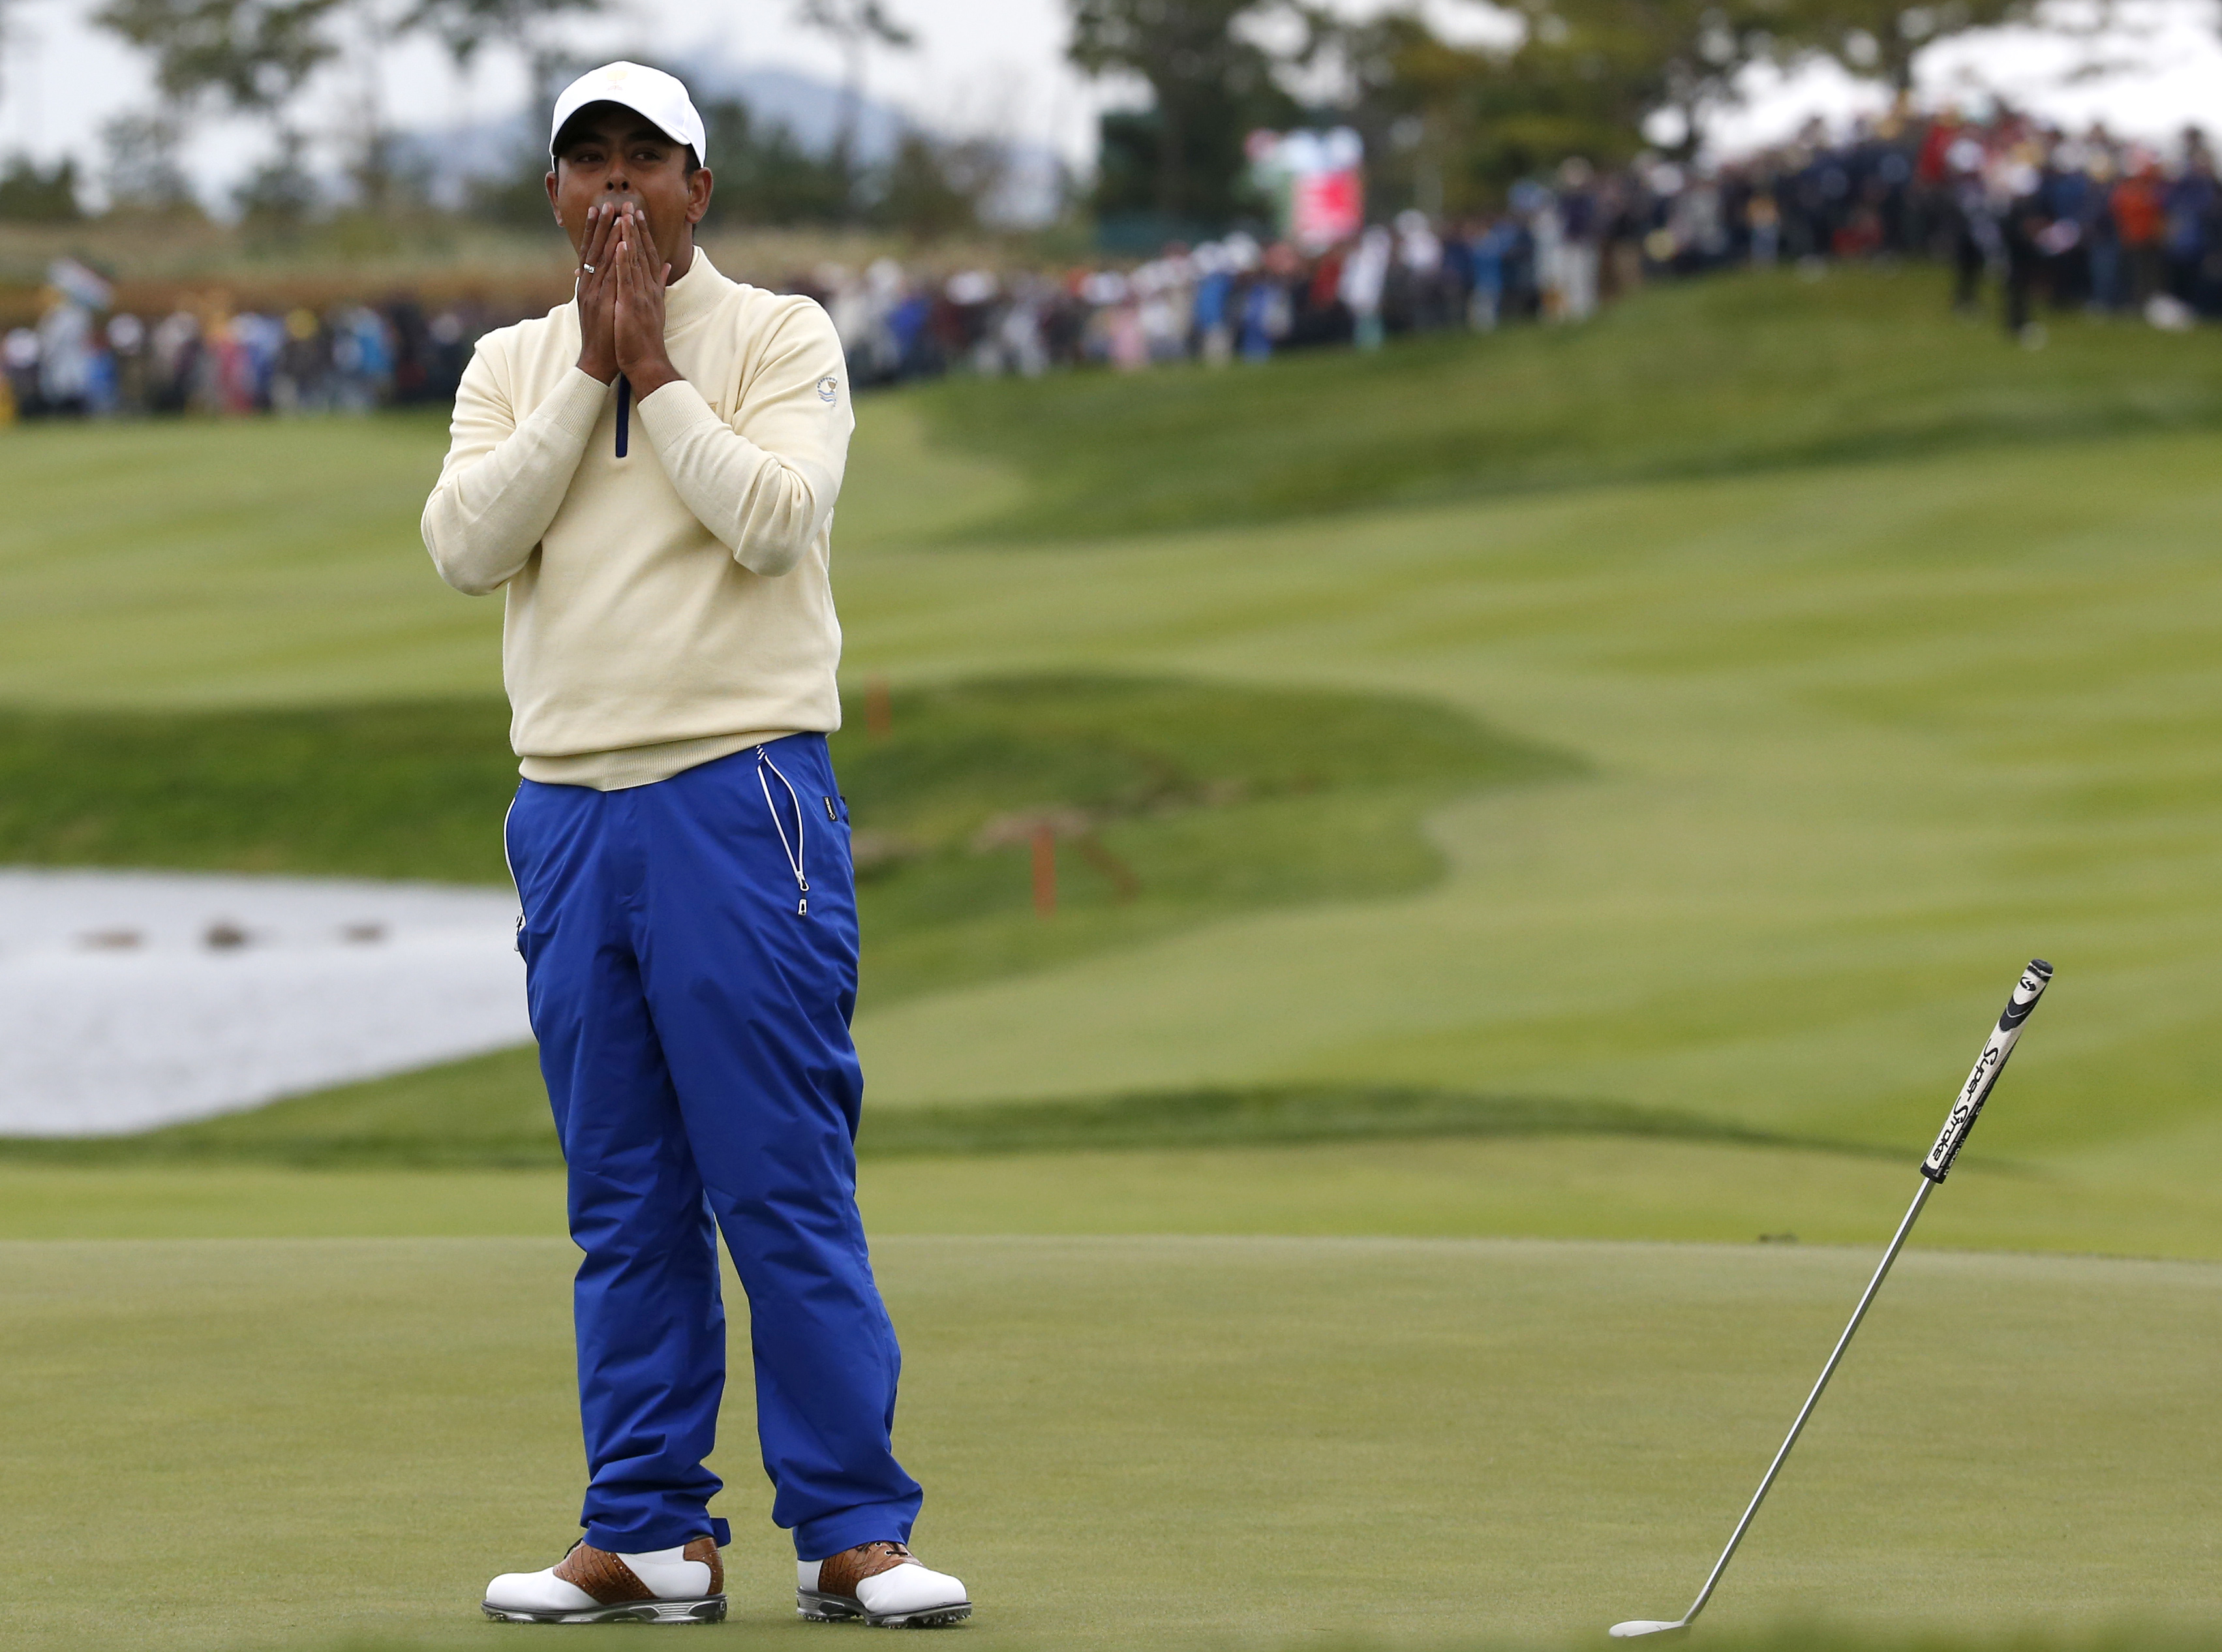 International team player Anirban Lahiri of India reacts on the 18th green after missing a putt to lose his match against United States' Chris Kirk in their singles match at the Presidents Cup golf tournament at the Jack Nicklaus Golf Club Korea, in Inche